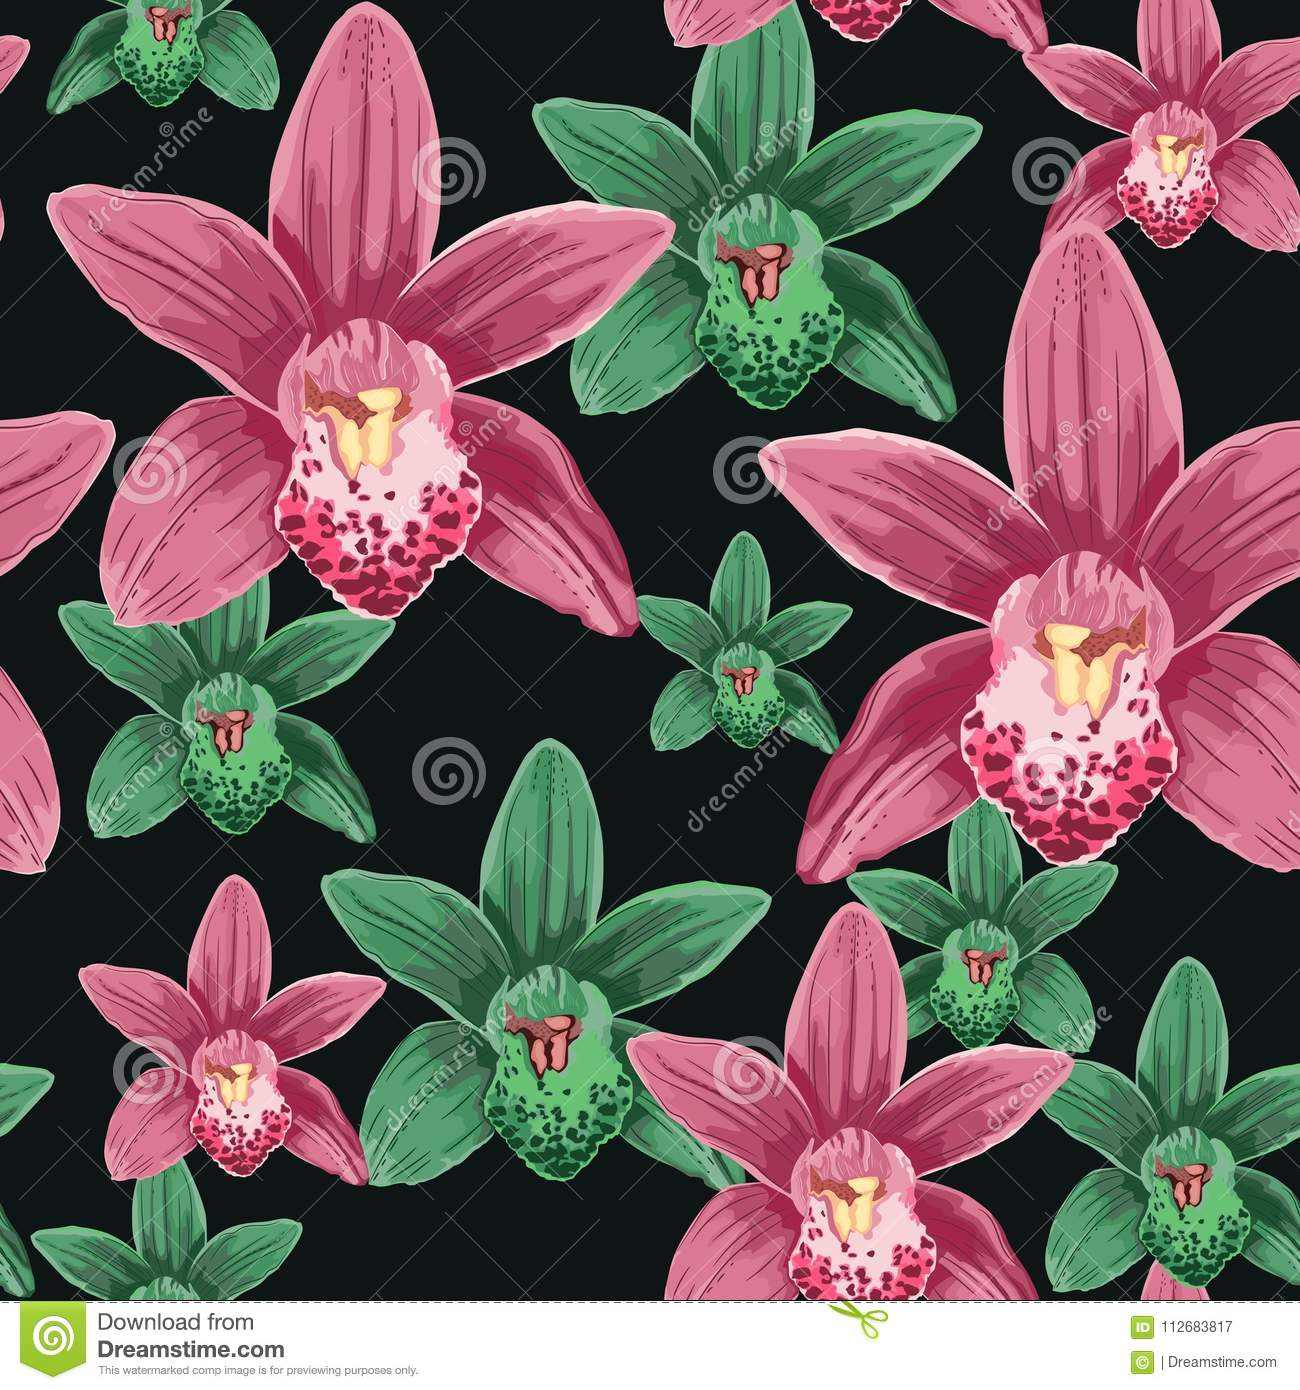 Watercolor style seamless pattern with orchid flowers.